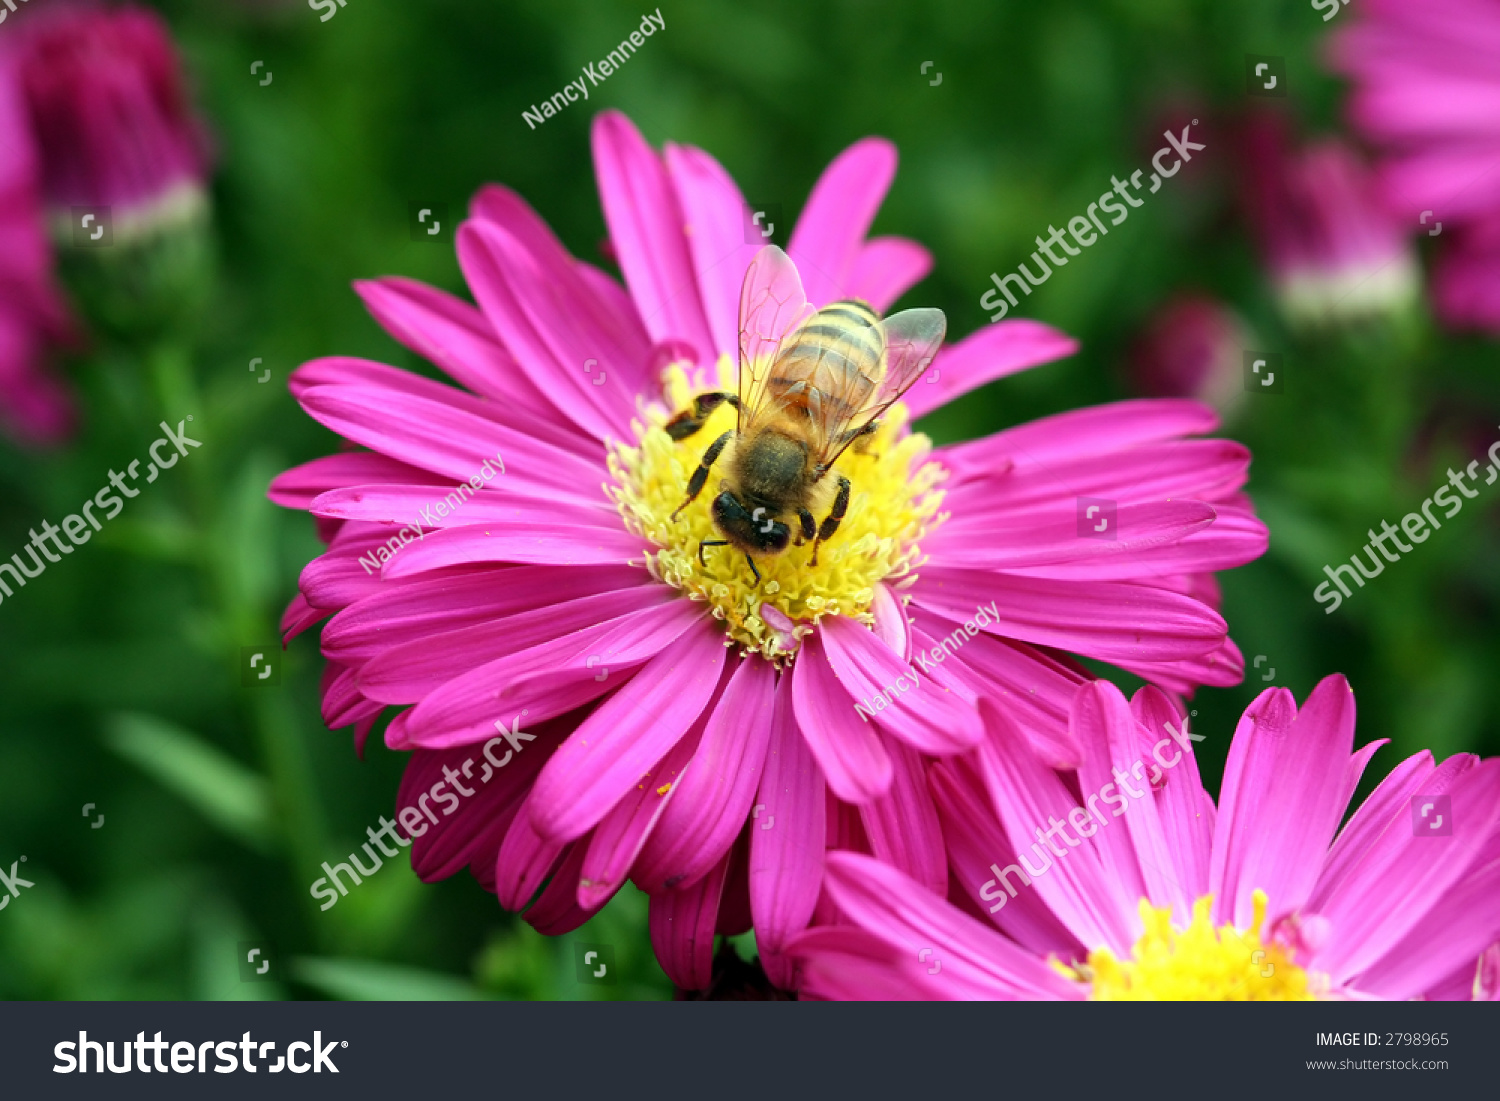 Honey bee on pink daisy like stock photo edit now 2798965 honey bee on a pink daisy like flower izmirmasajfo